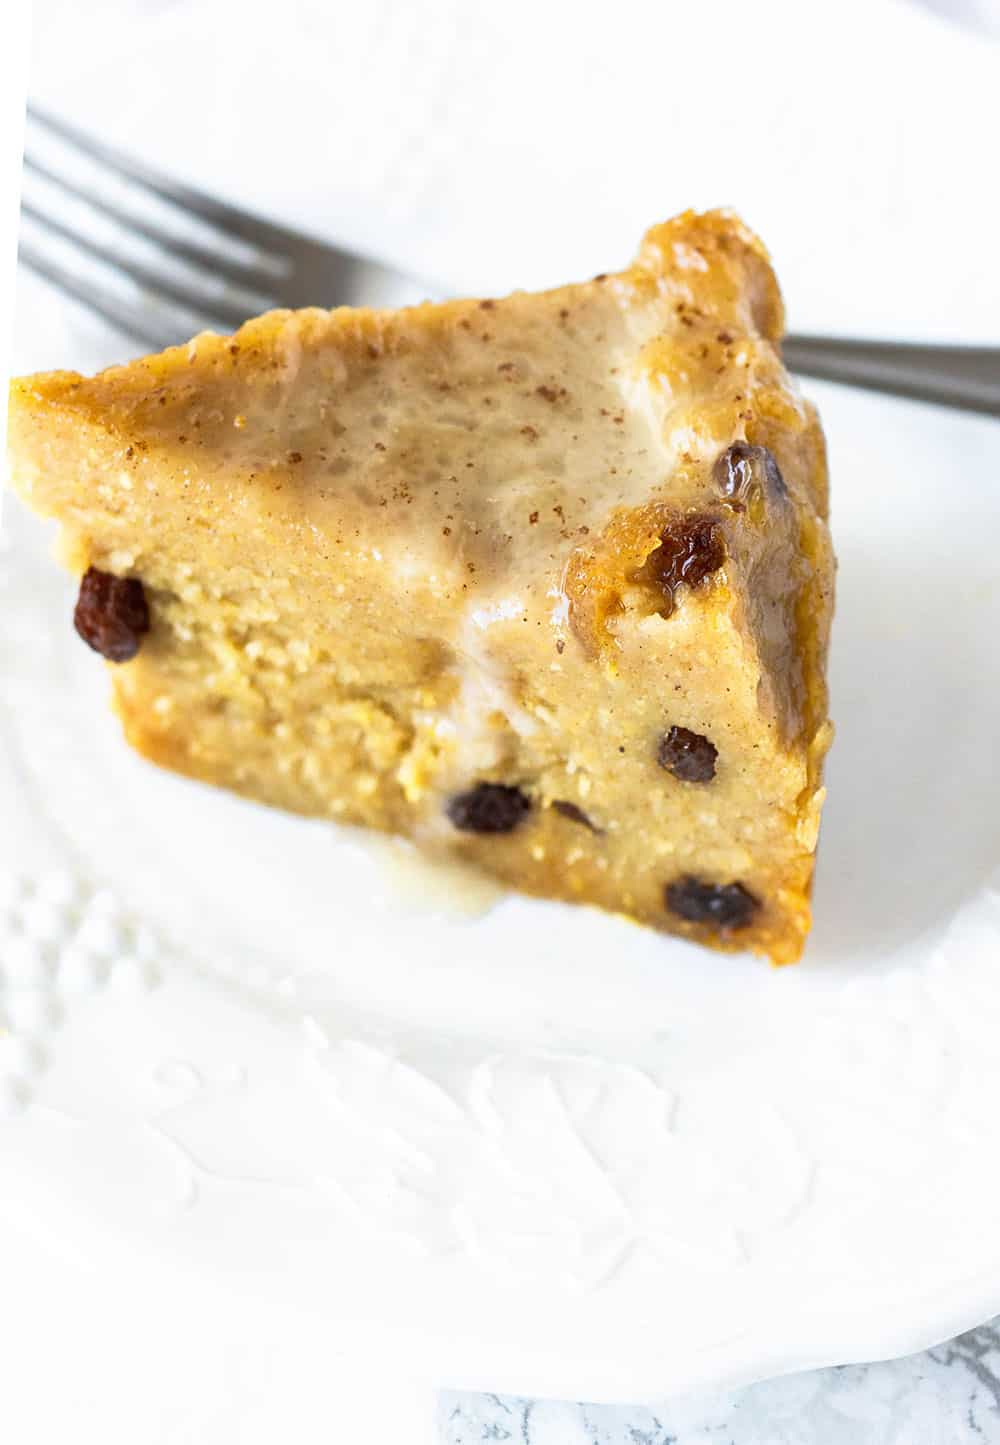 slice of cornmeal pudding on white plate with fork